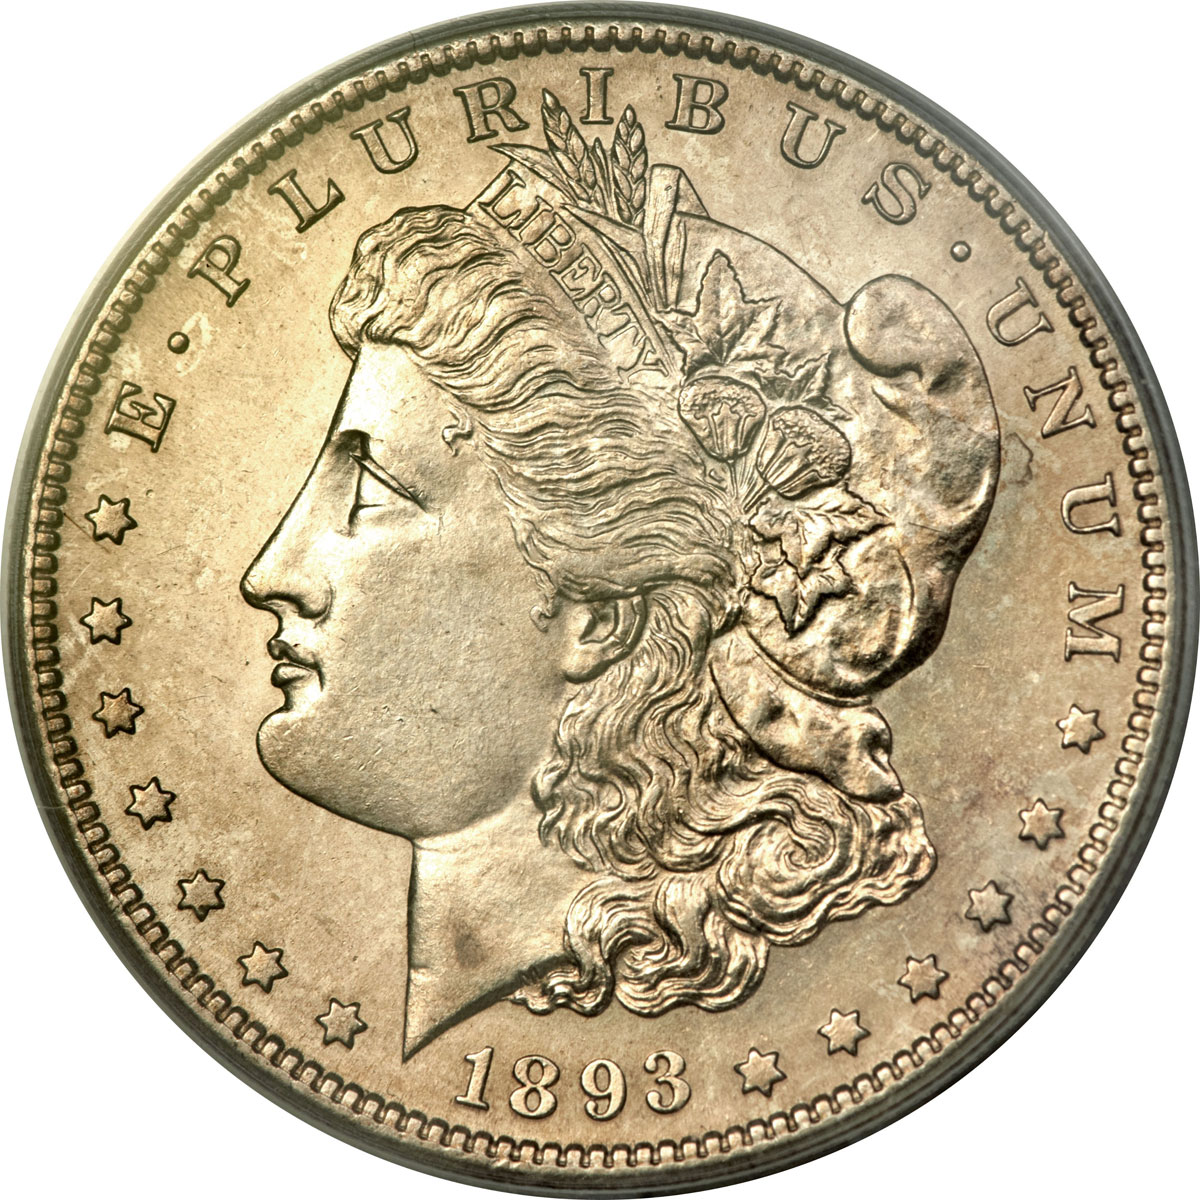 Rare Collector Coins Lead Summer Fun Offerings